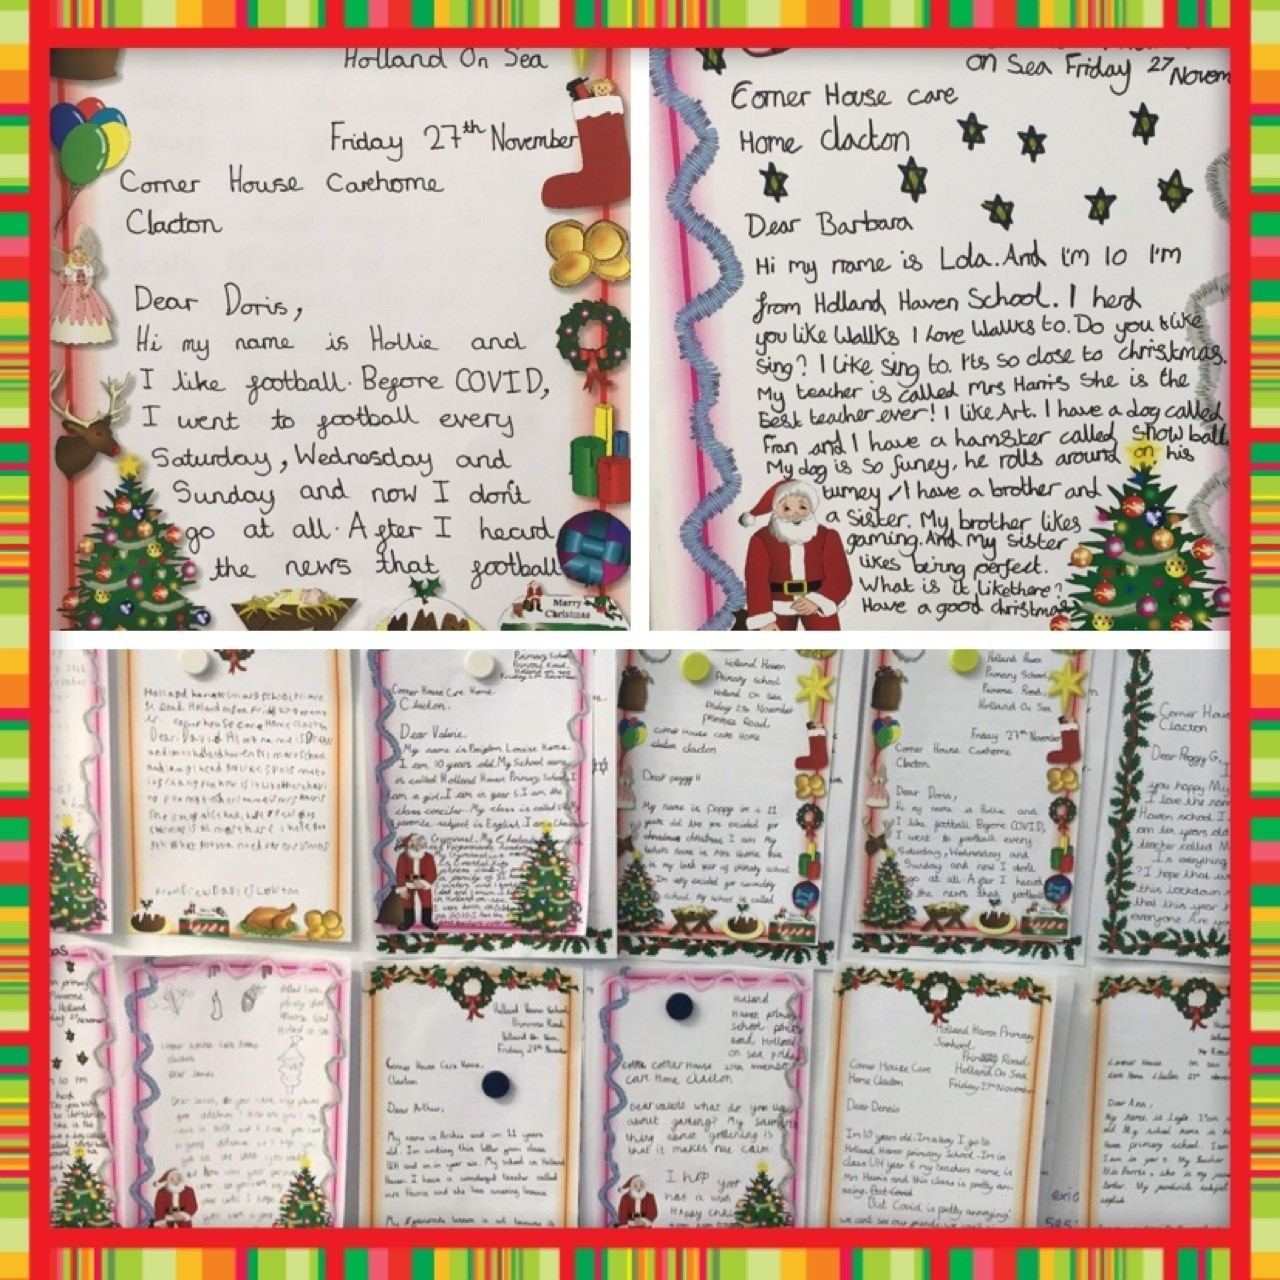 Christmas letters forCorner House care home | Asda Clacton-on-Sea